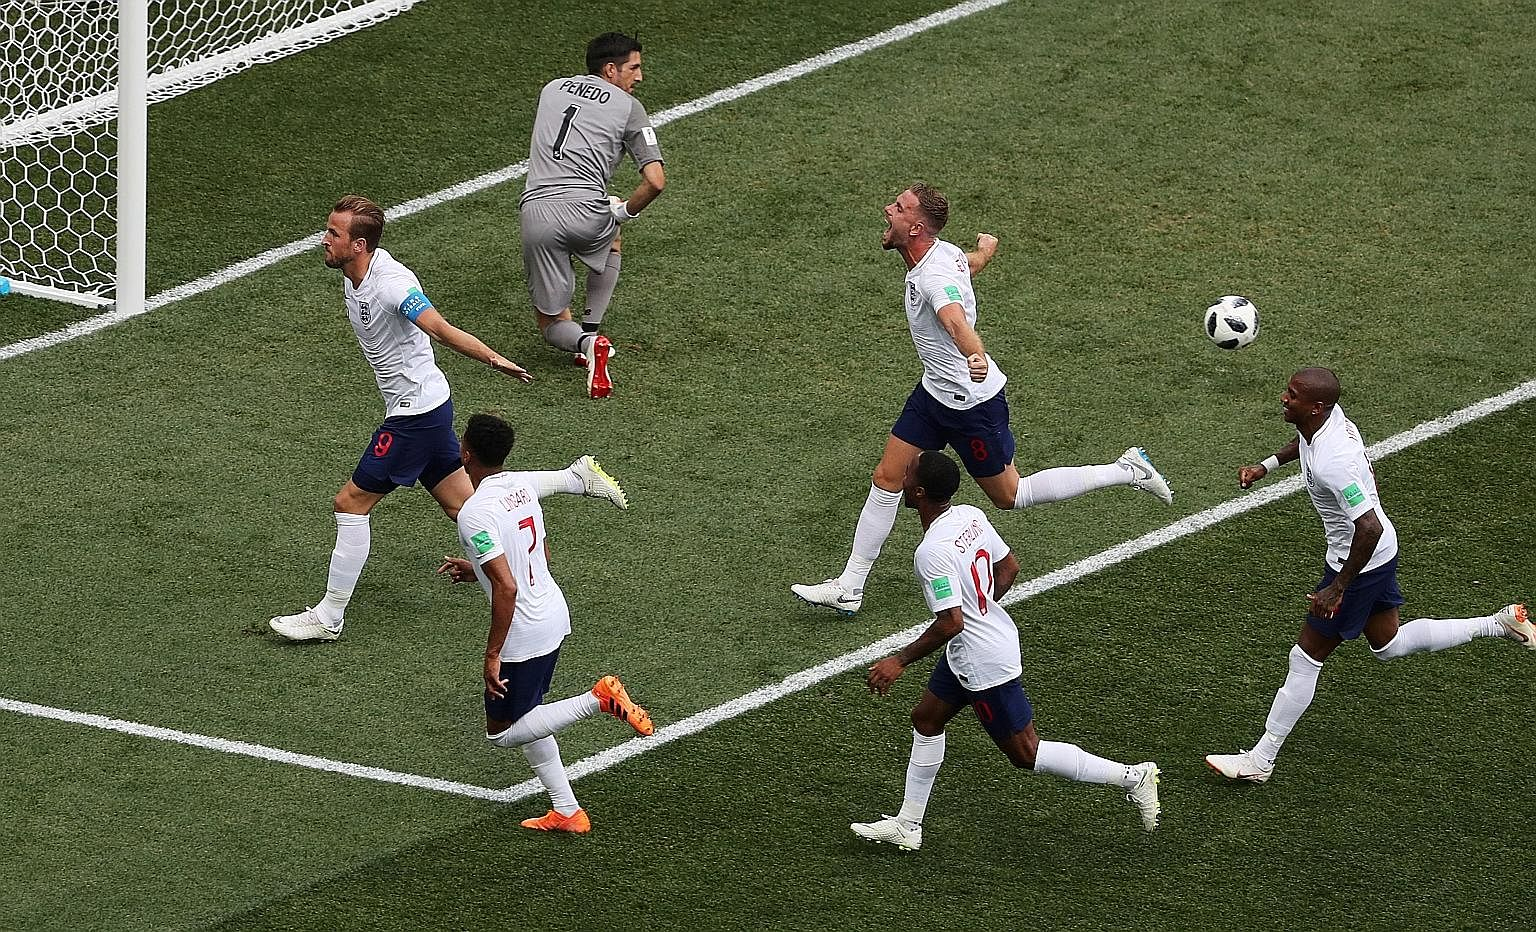 England captain Harry Kane (at left) celebrating his second goal - a penalty in first-half stoppage time - in their 6-1 Group G win over Panama yesterday. He also struck in the 22nd (penalty) and 62nd minutes to become only the third England player t